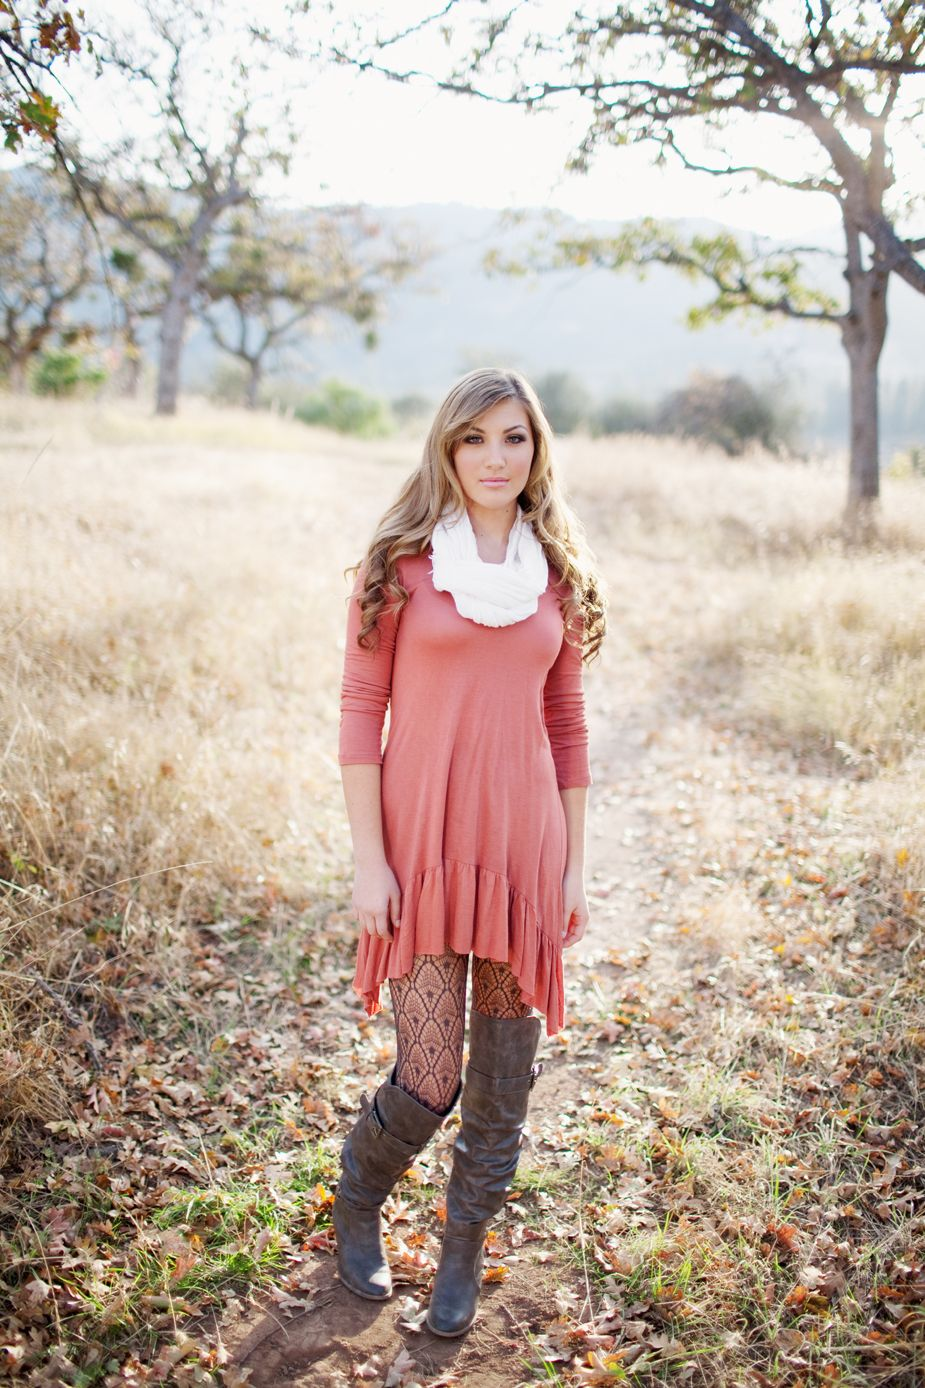 Boots and dress senior style pinterest fashion style and dresses